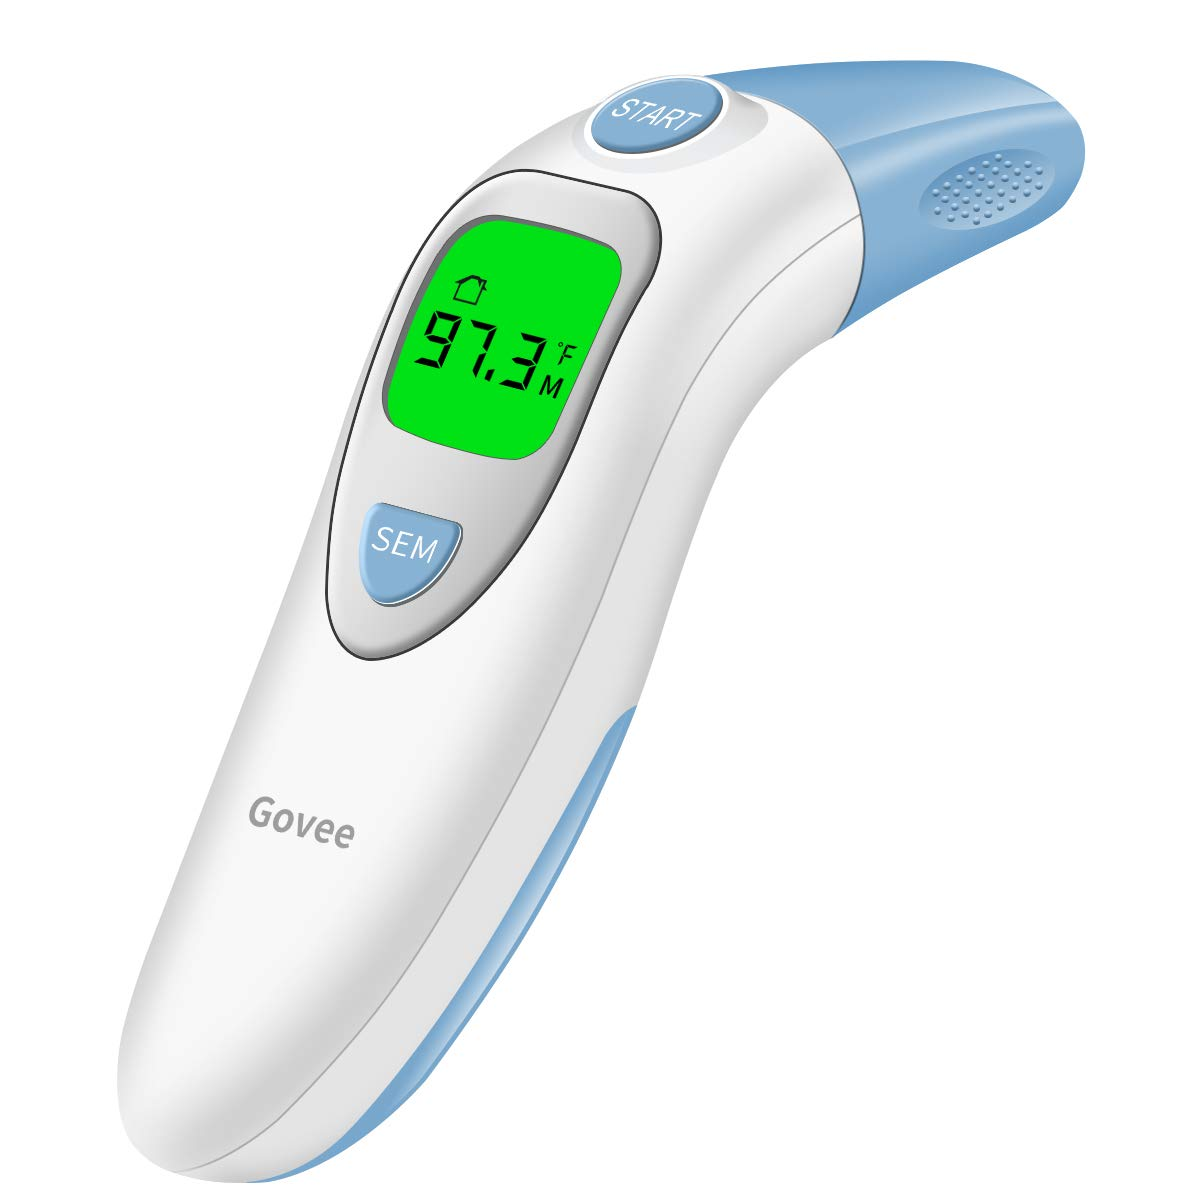 Govee Forehead Ear Thermometer Digital Infrared Head Medical Thermometer for Baby Kids Adults Fever by MINGER, 5-in-1 Accurate Instant Read